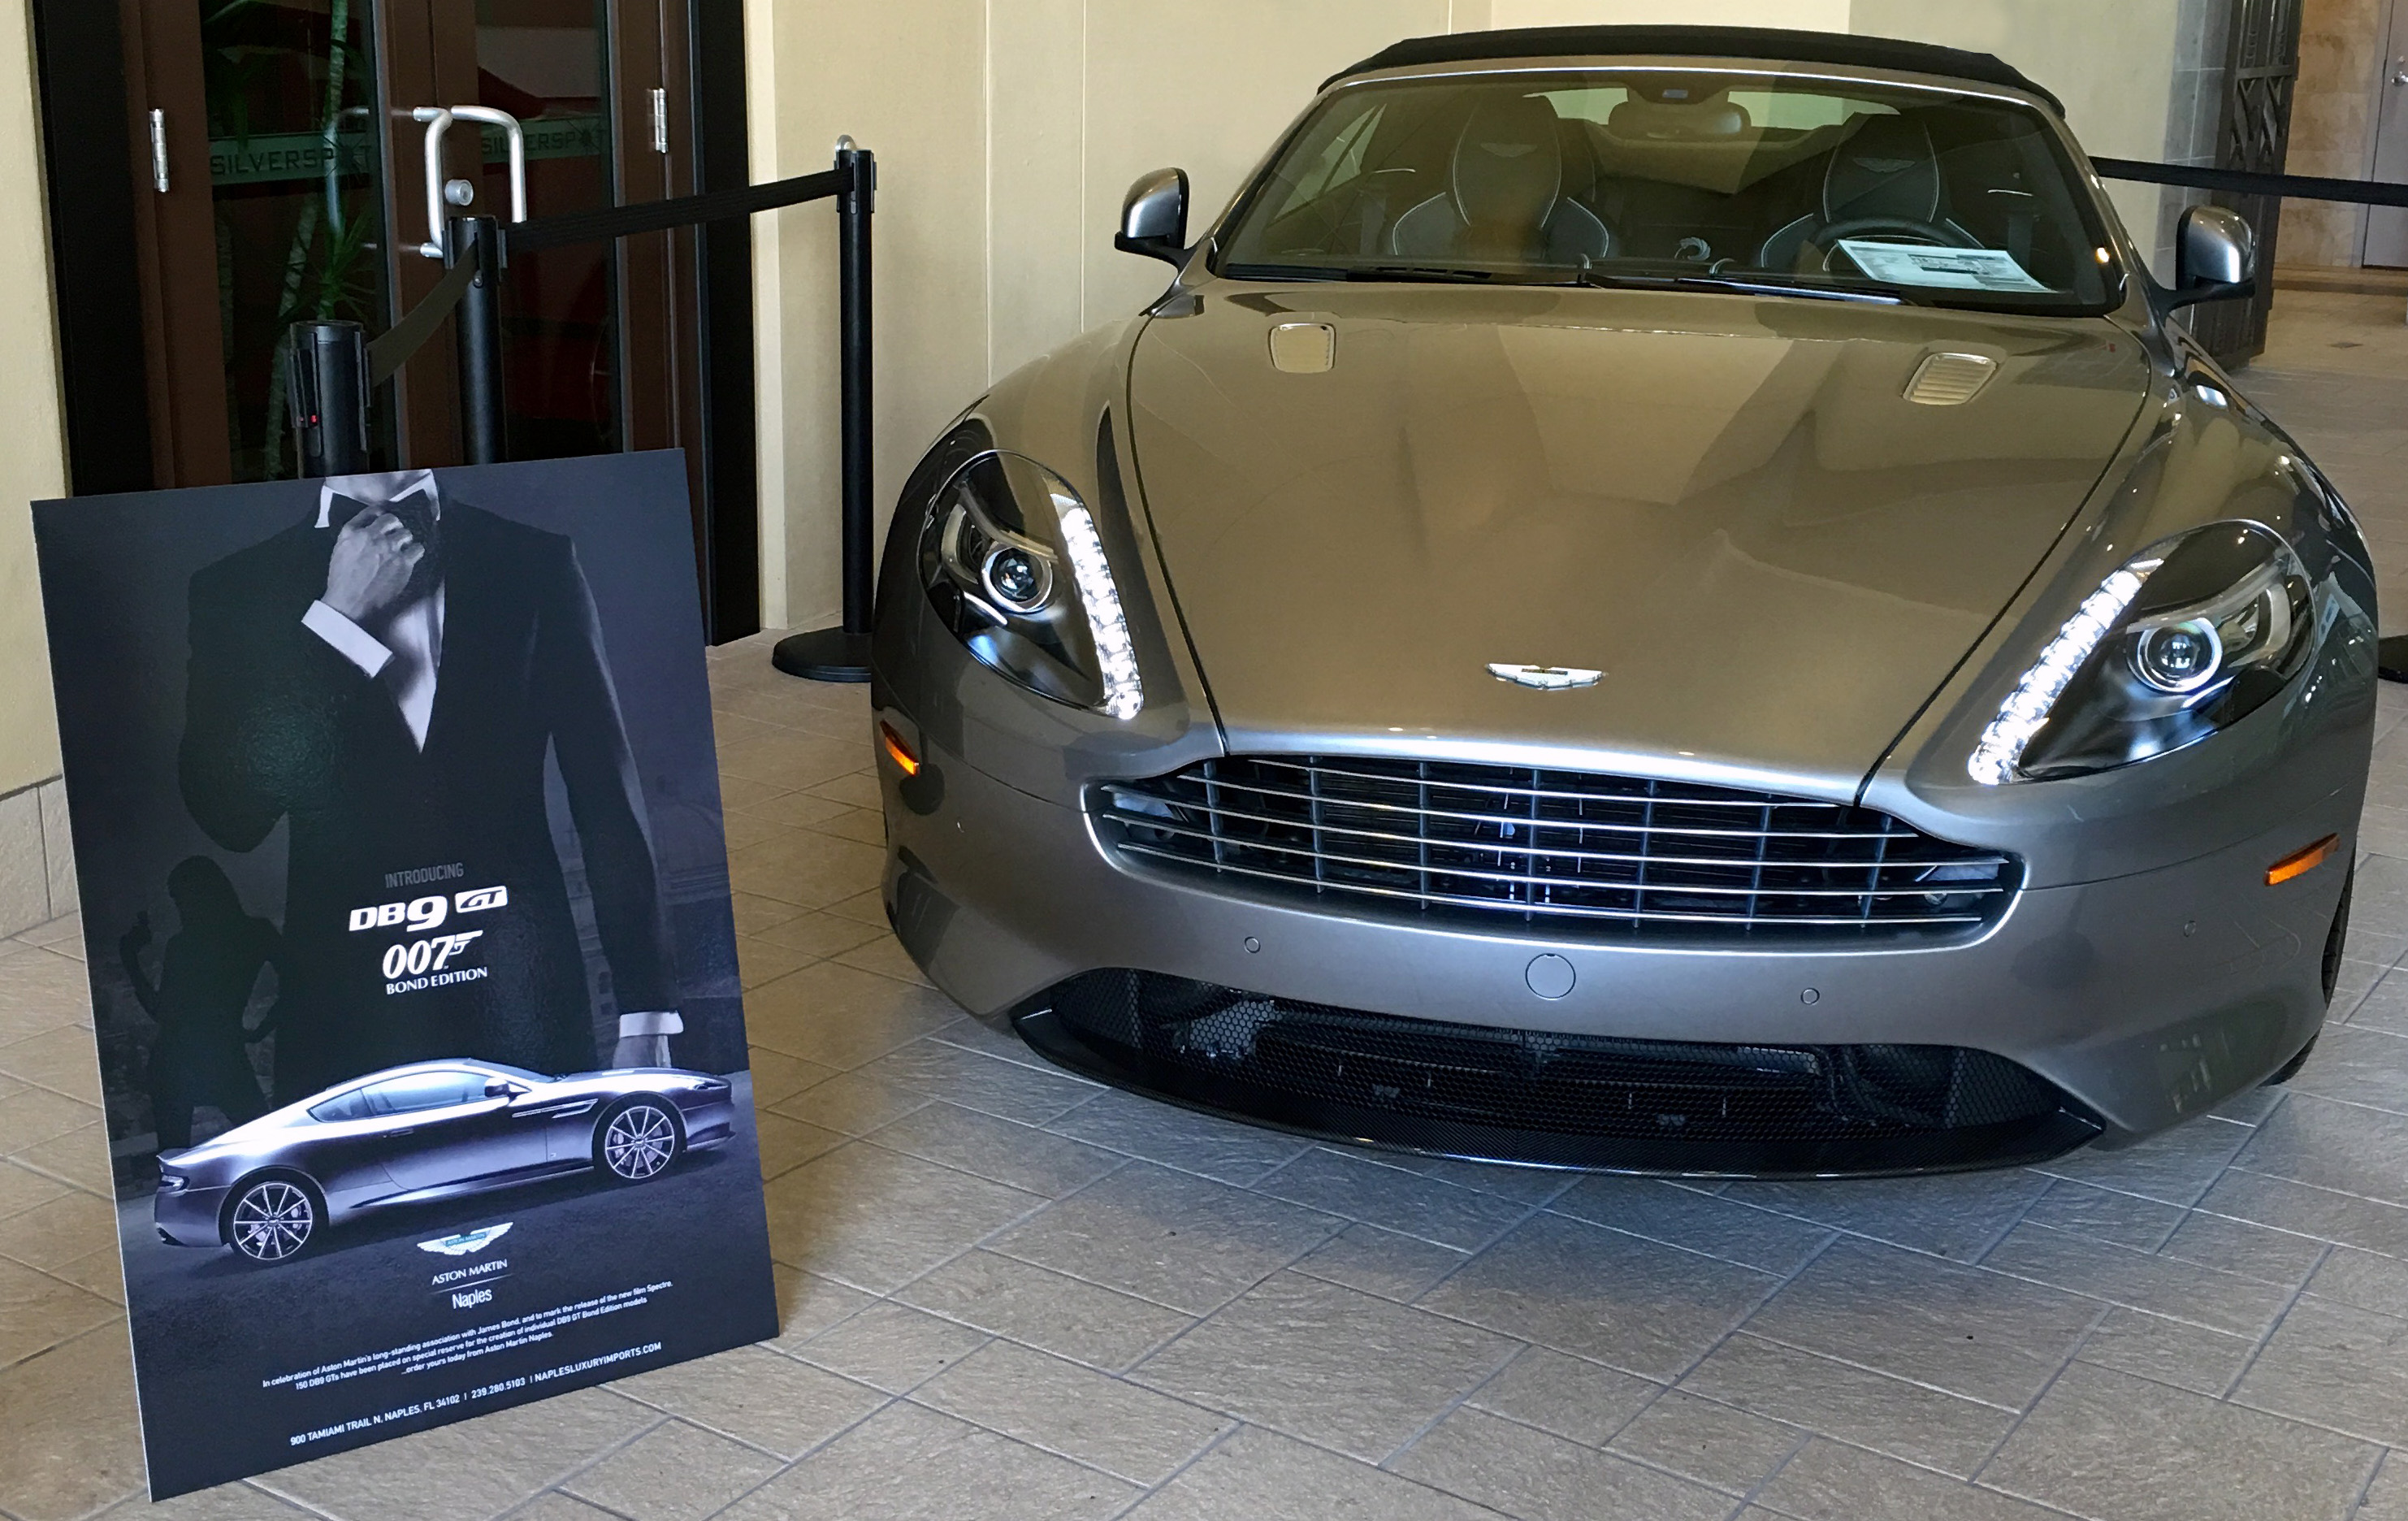 News Aston Martin Naples Official Aston Martin Dealer - Aston martin dealership florida